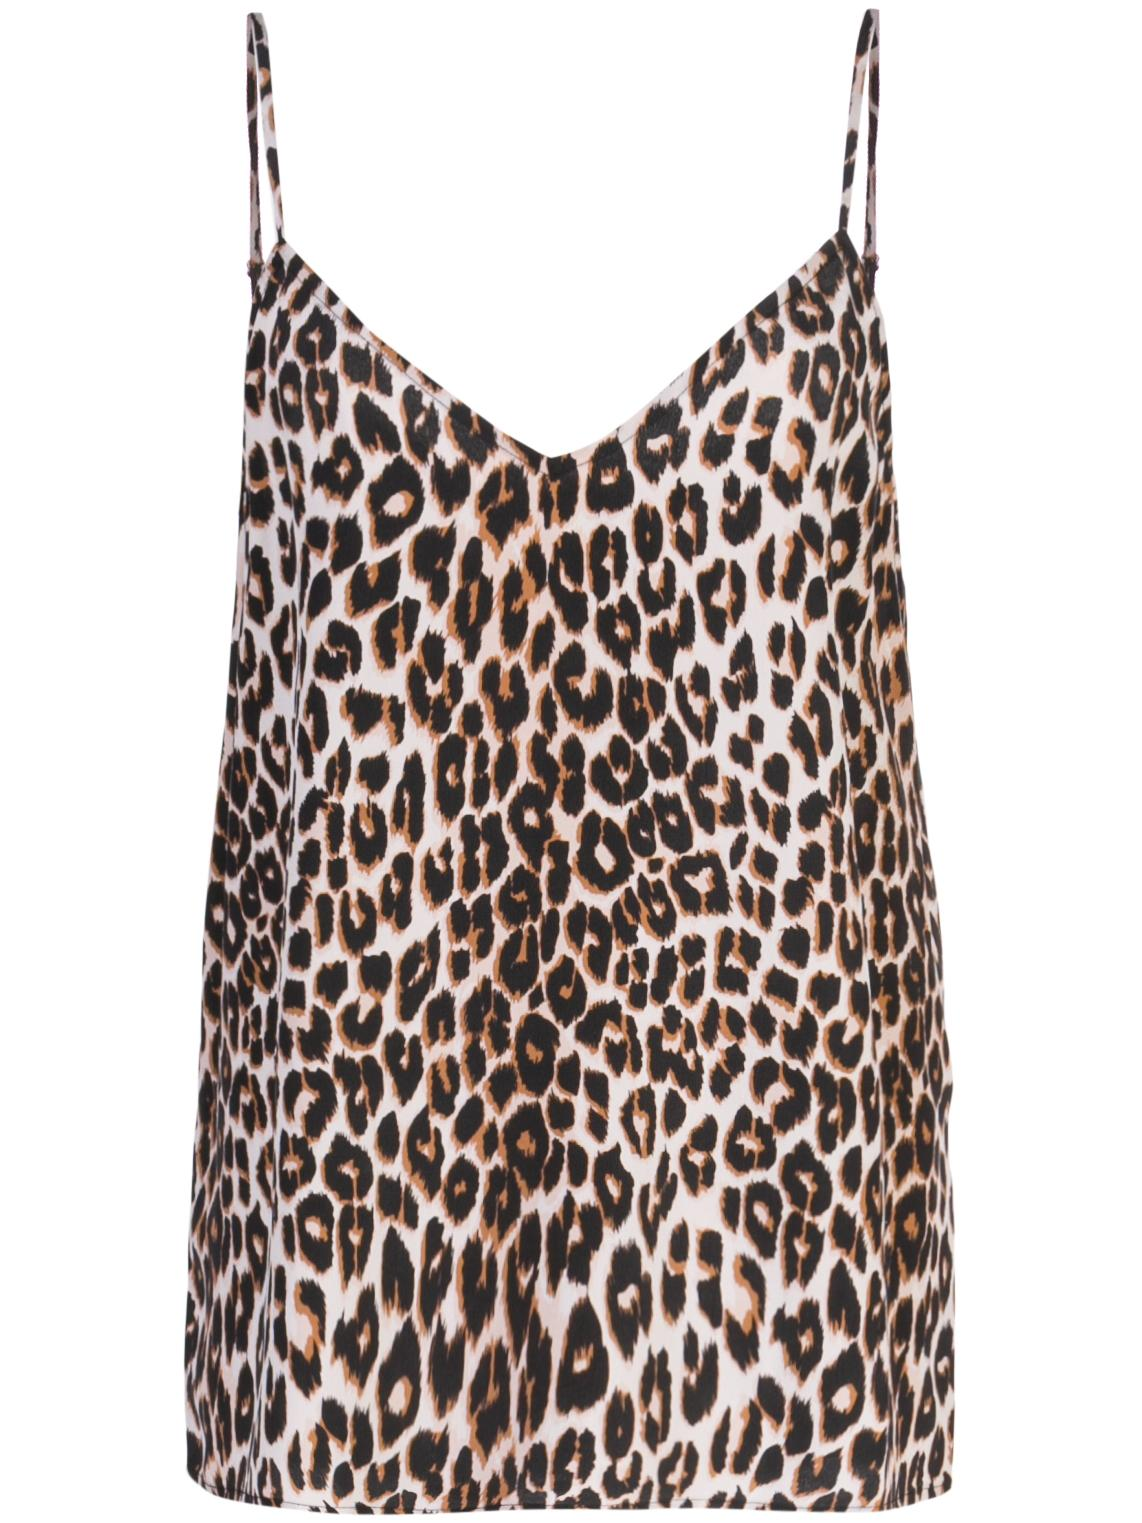 Layla Leopard Print Camisole